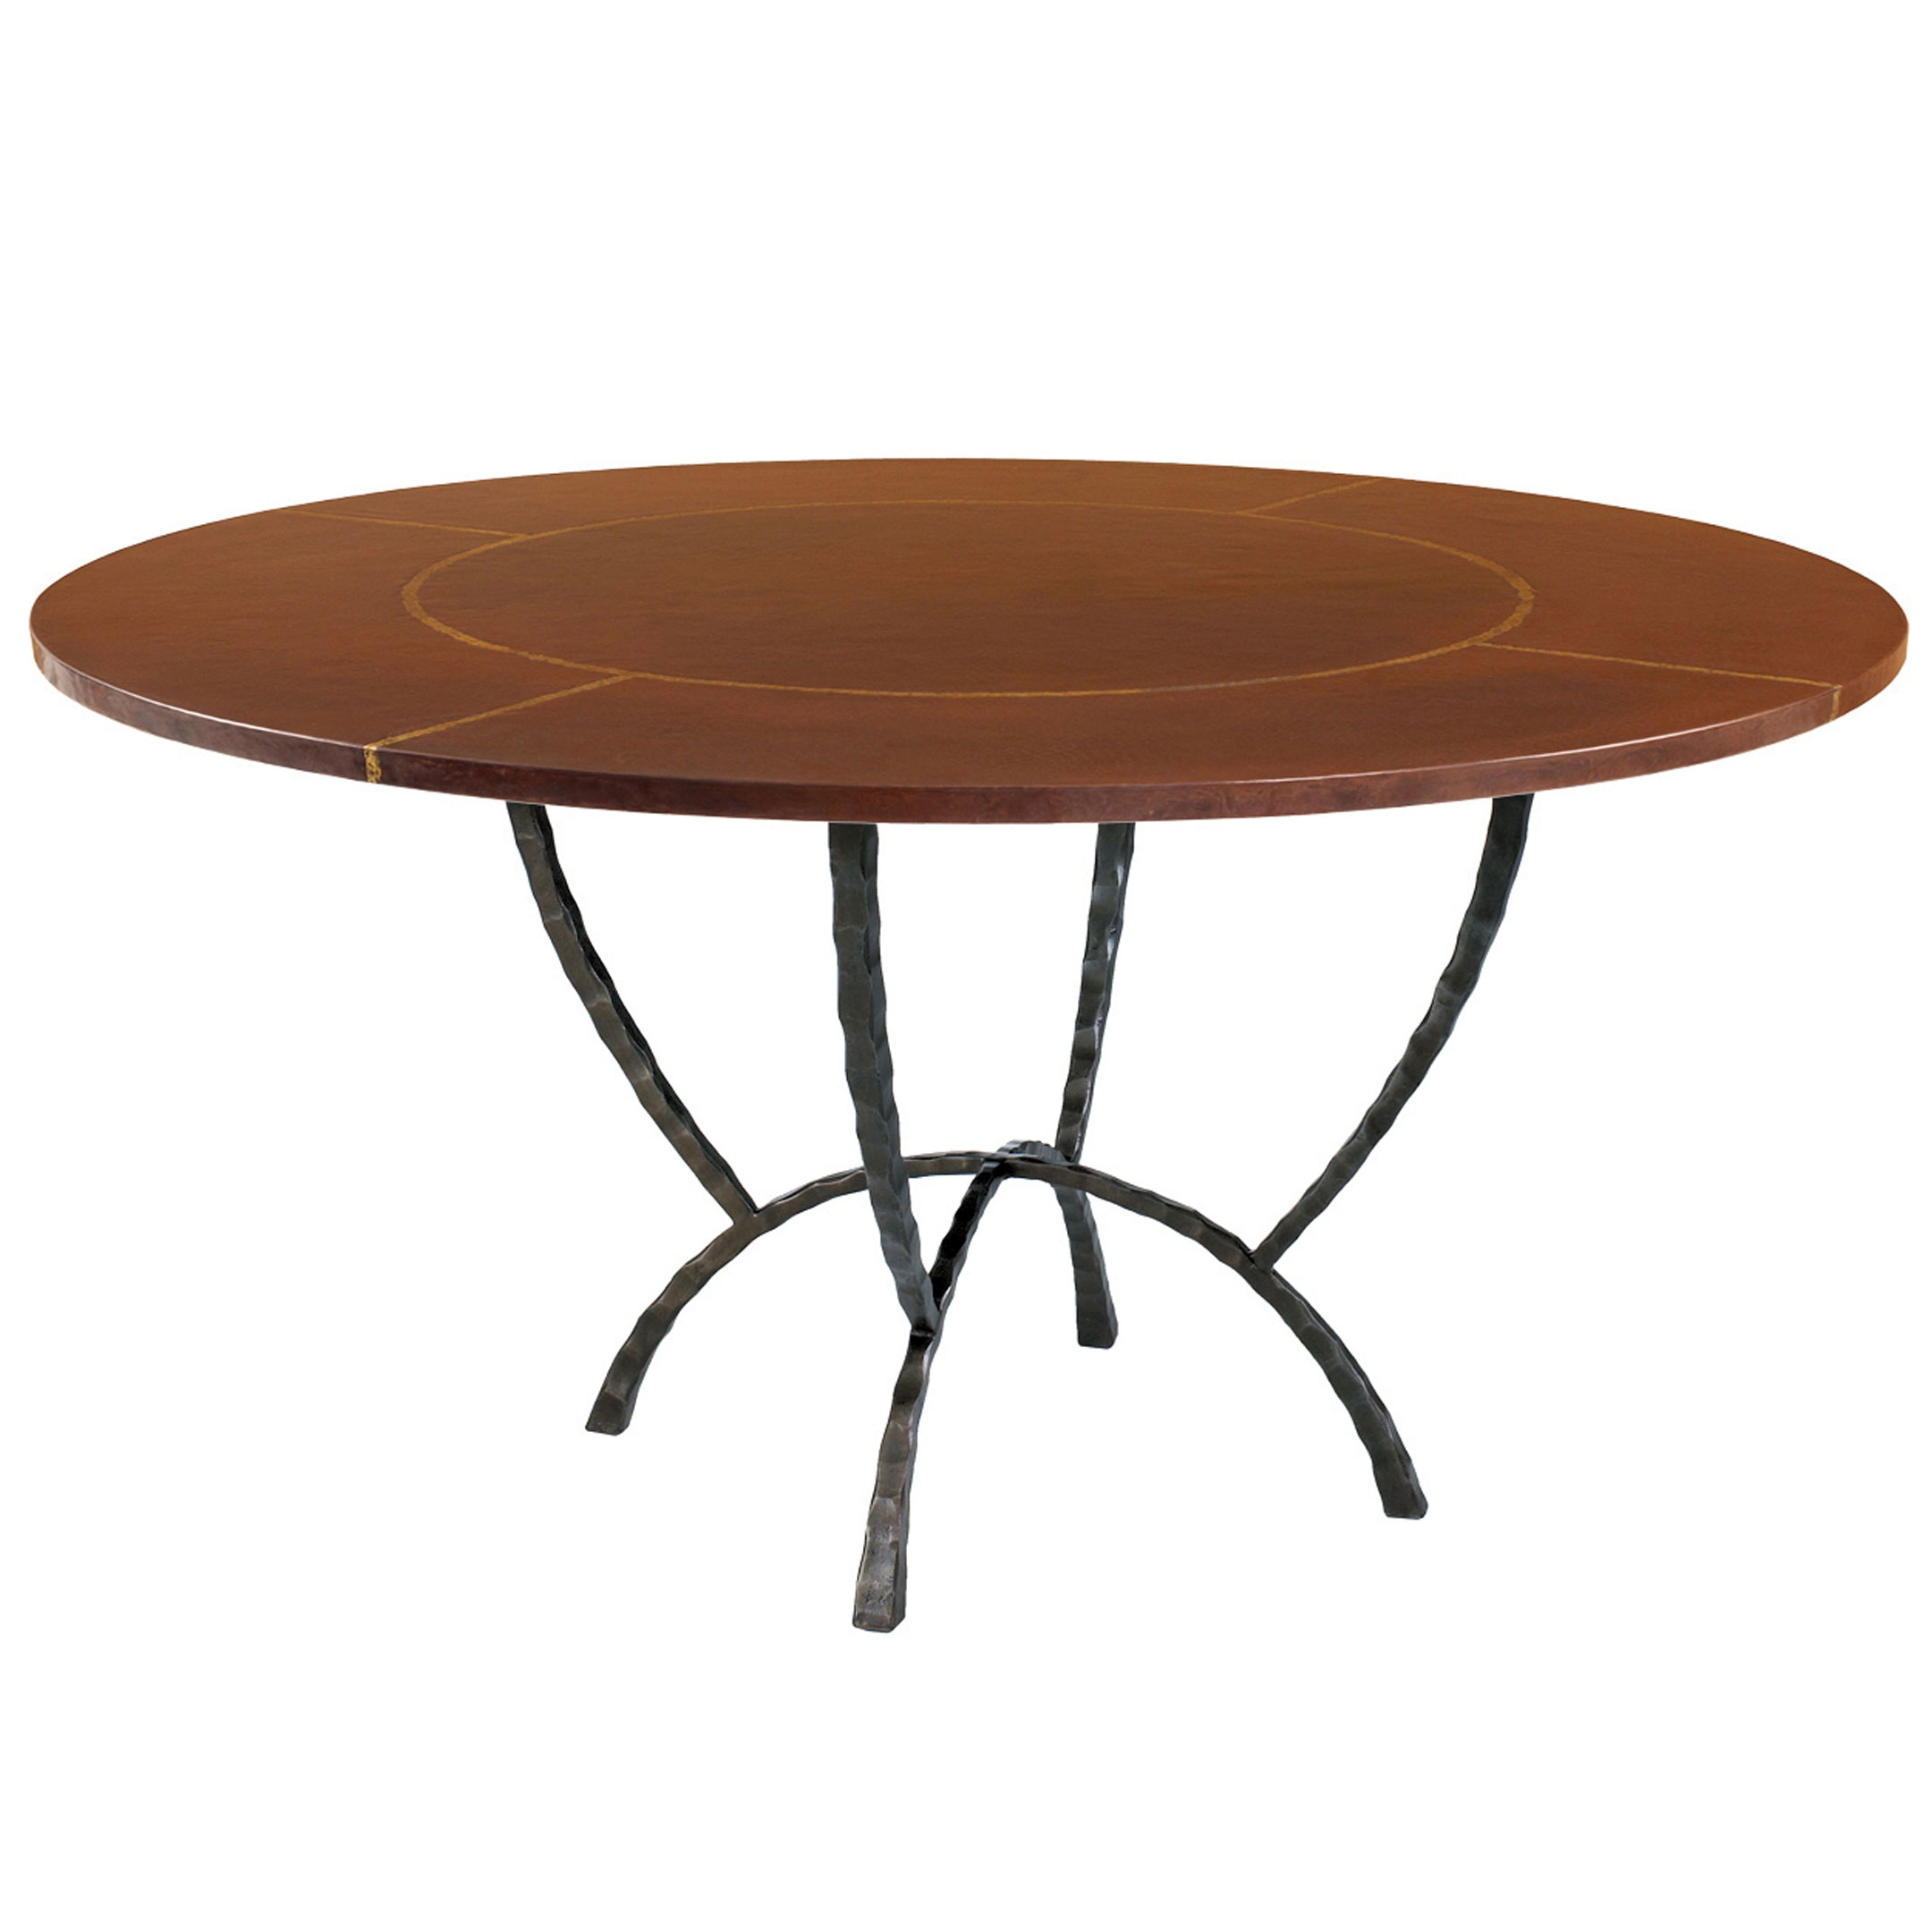 Wrought Iron Hudson 60 Inch Round Dining Table By Charleston Forge Larger Photo